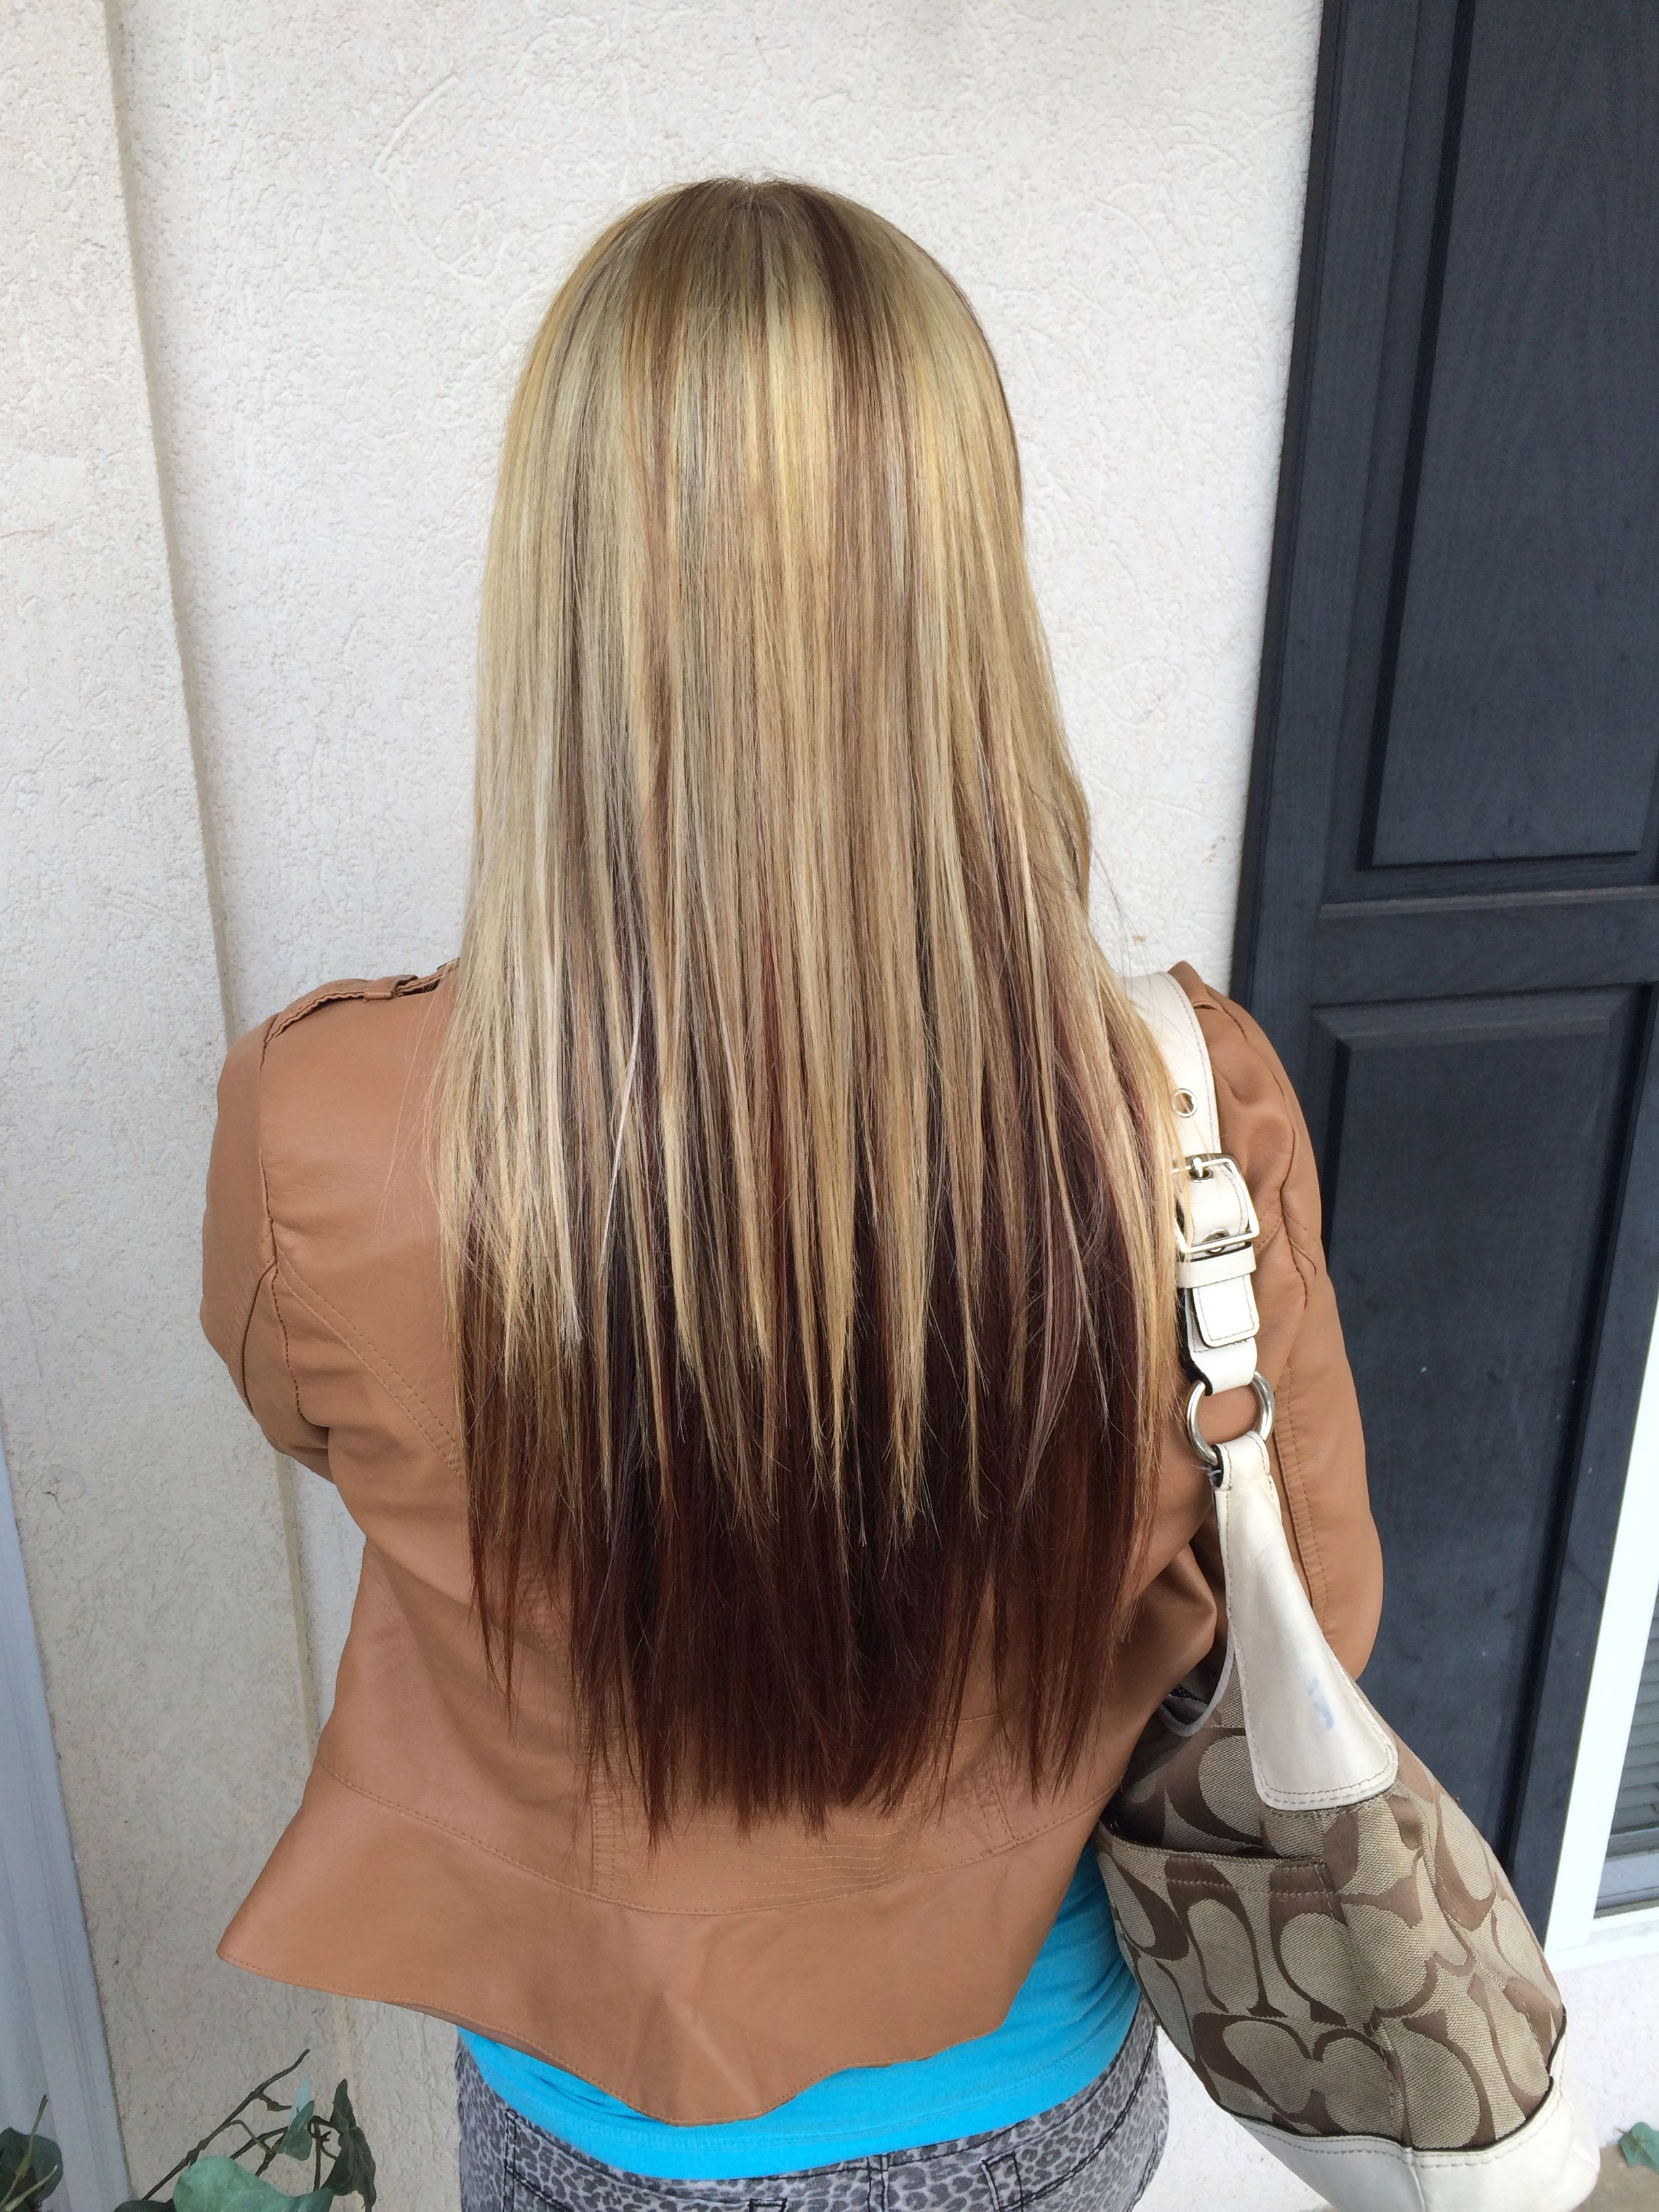 Blonde Top Half With Level 6 Neutral Brown Lowlights And